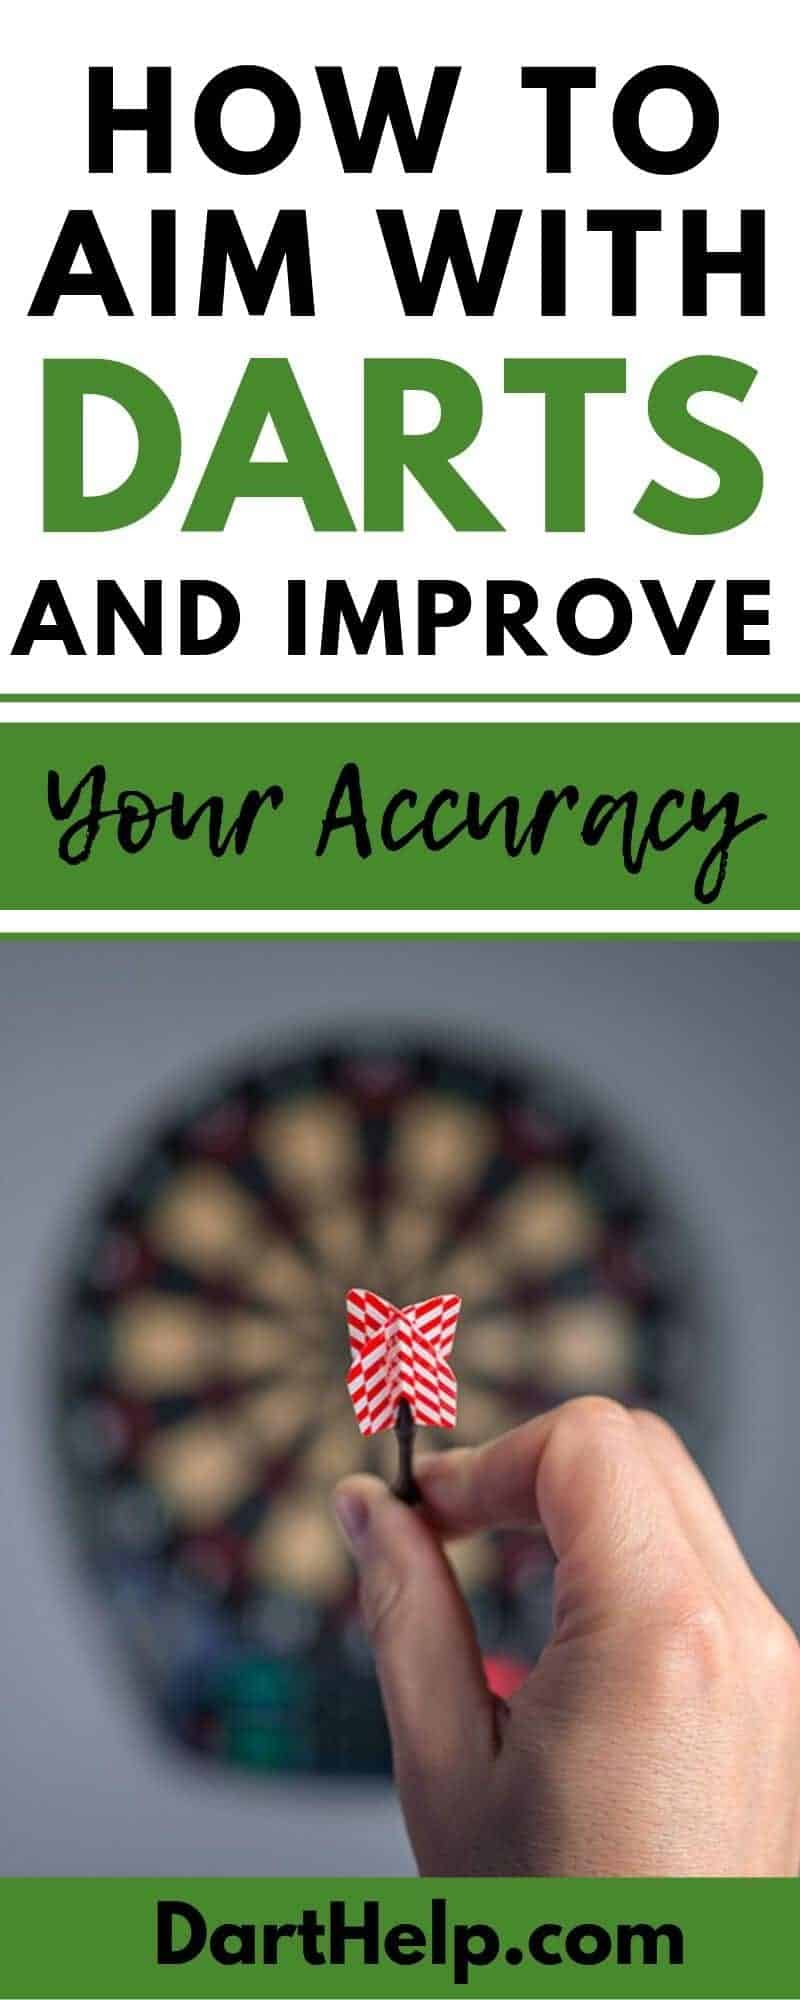 How To Aim Darts With Accuracy